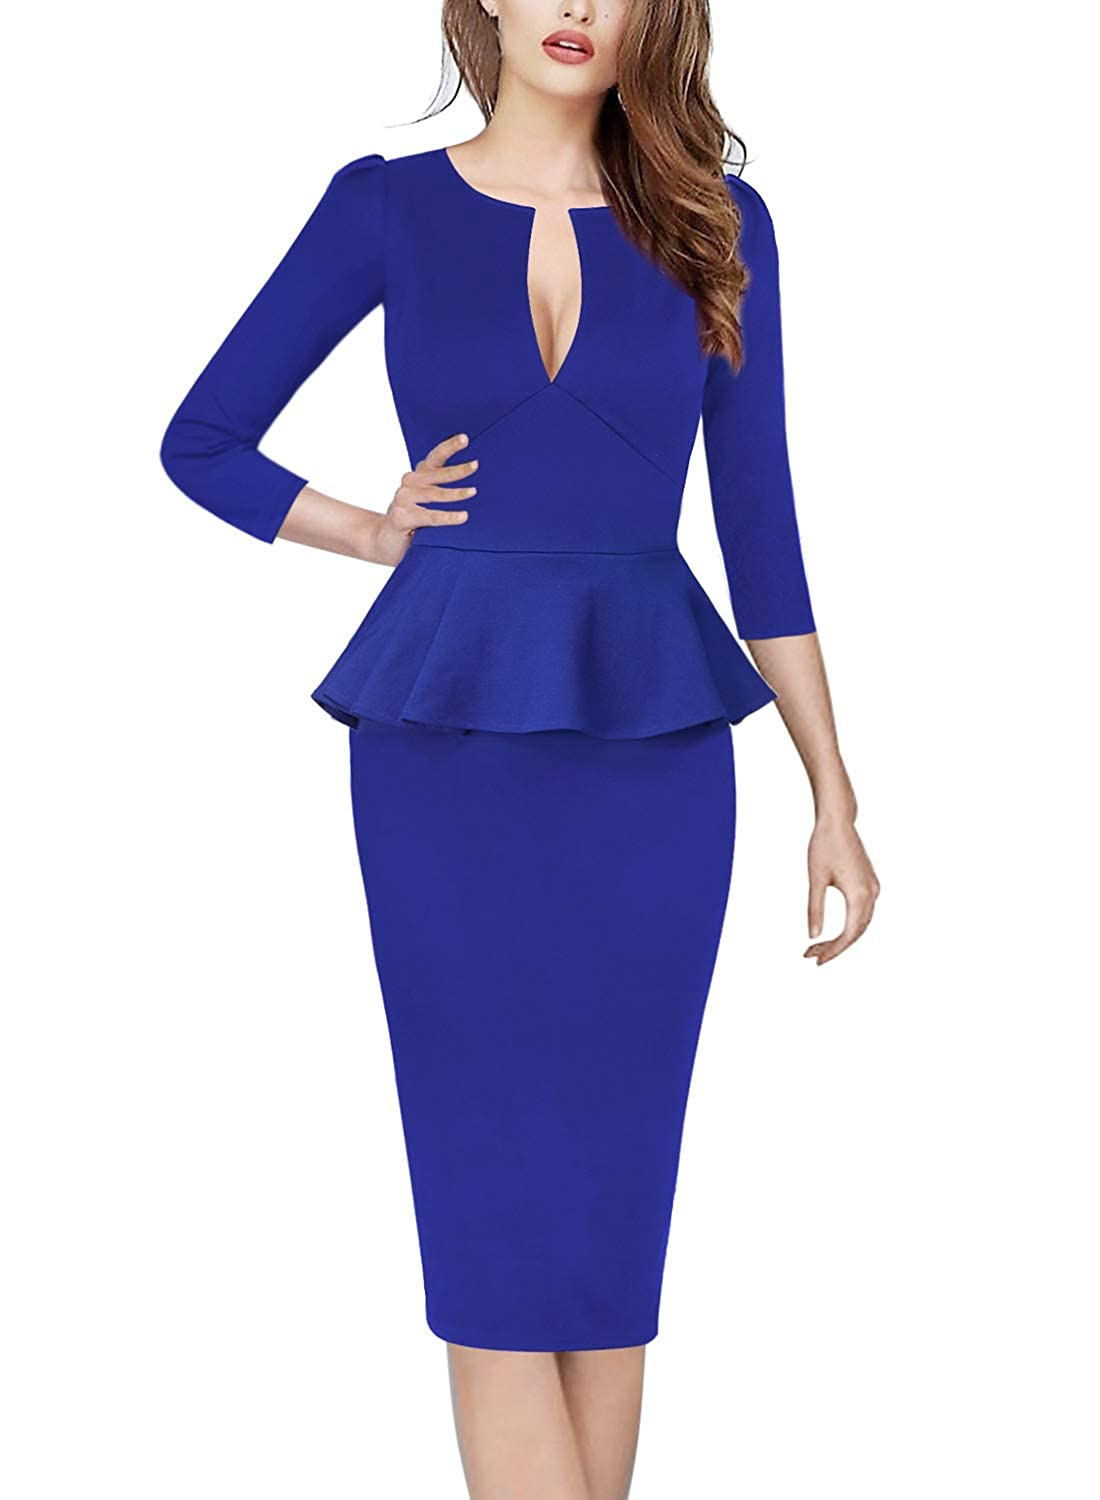 Bright bluee Plunge VfEmage Womens Sexy V Neck Party Cocktail Work Slim Fitted Pencil Bodycon Dress